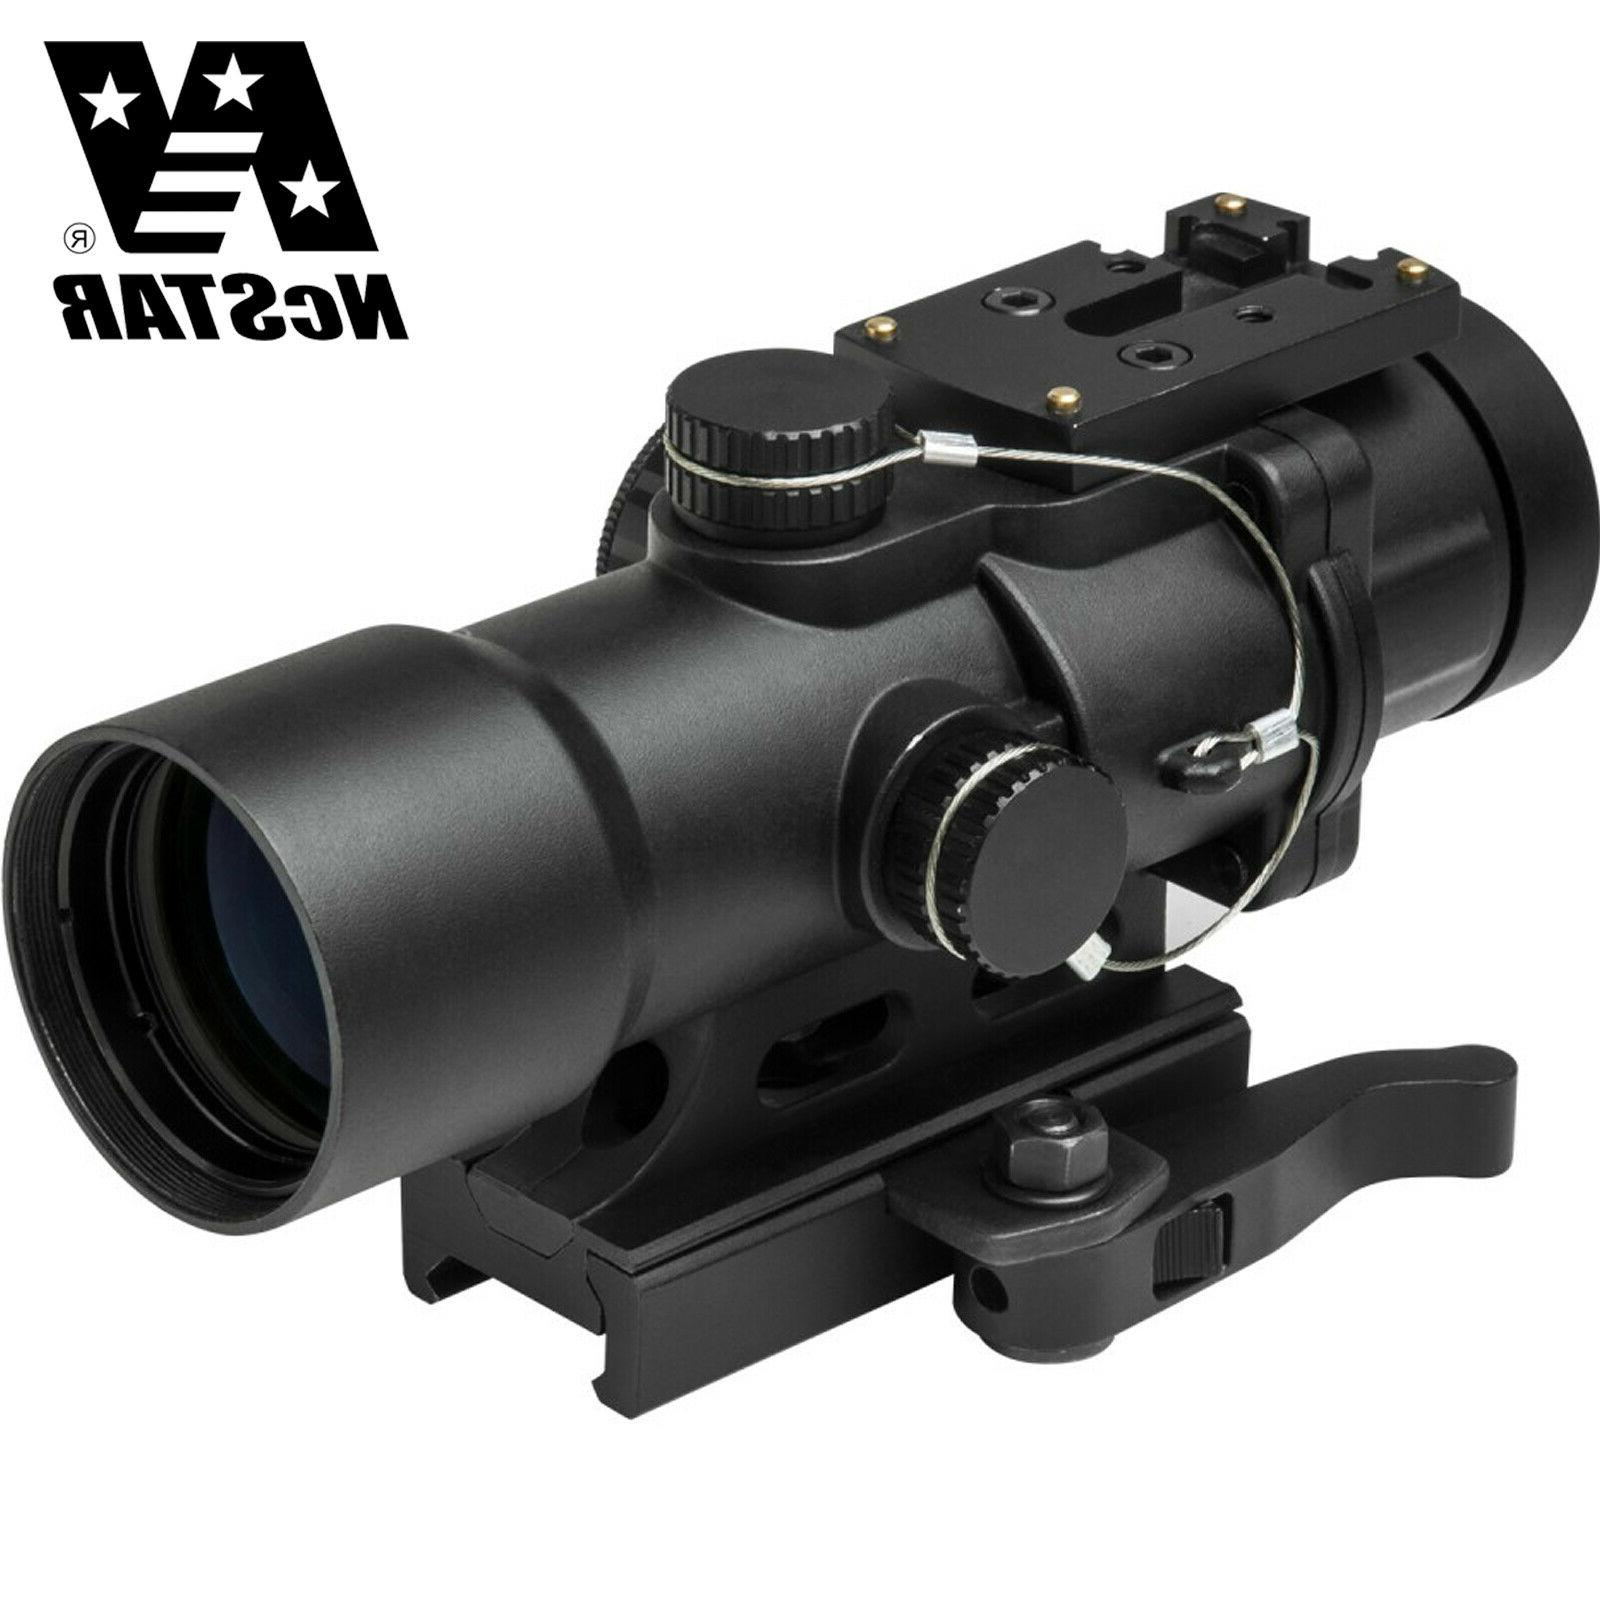 NcSTAR Cpo Scope Series 3.5X32 Compact Pristmatic Optic Gree